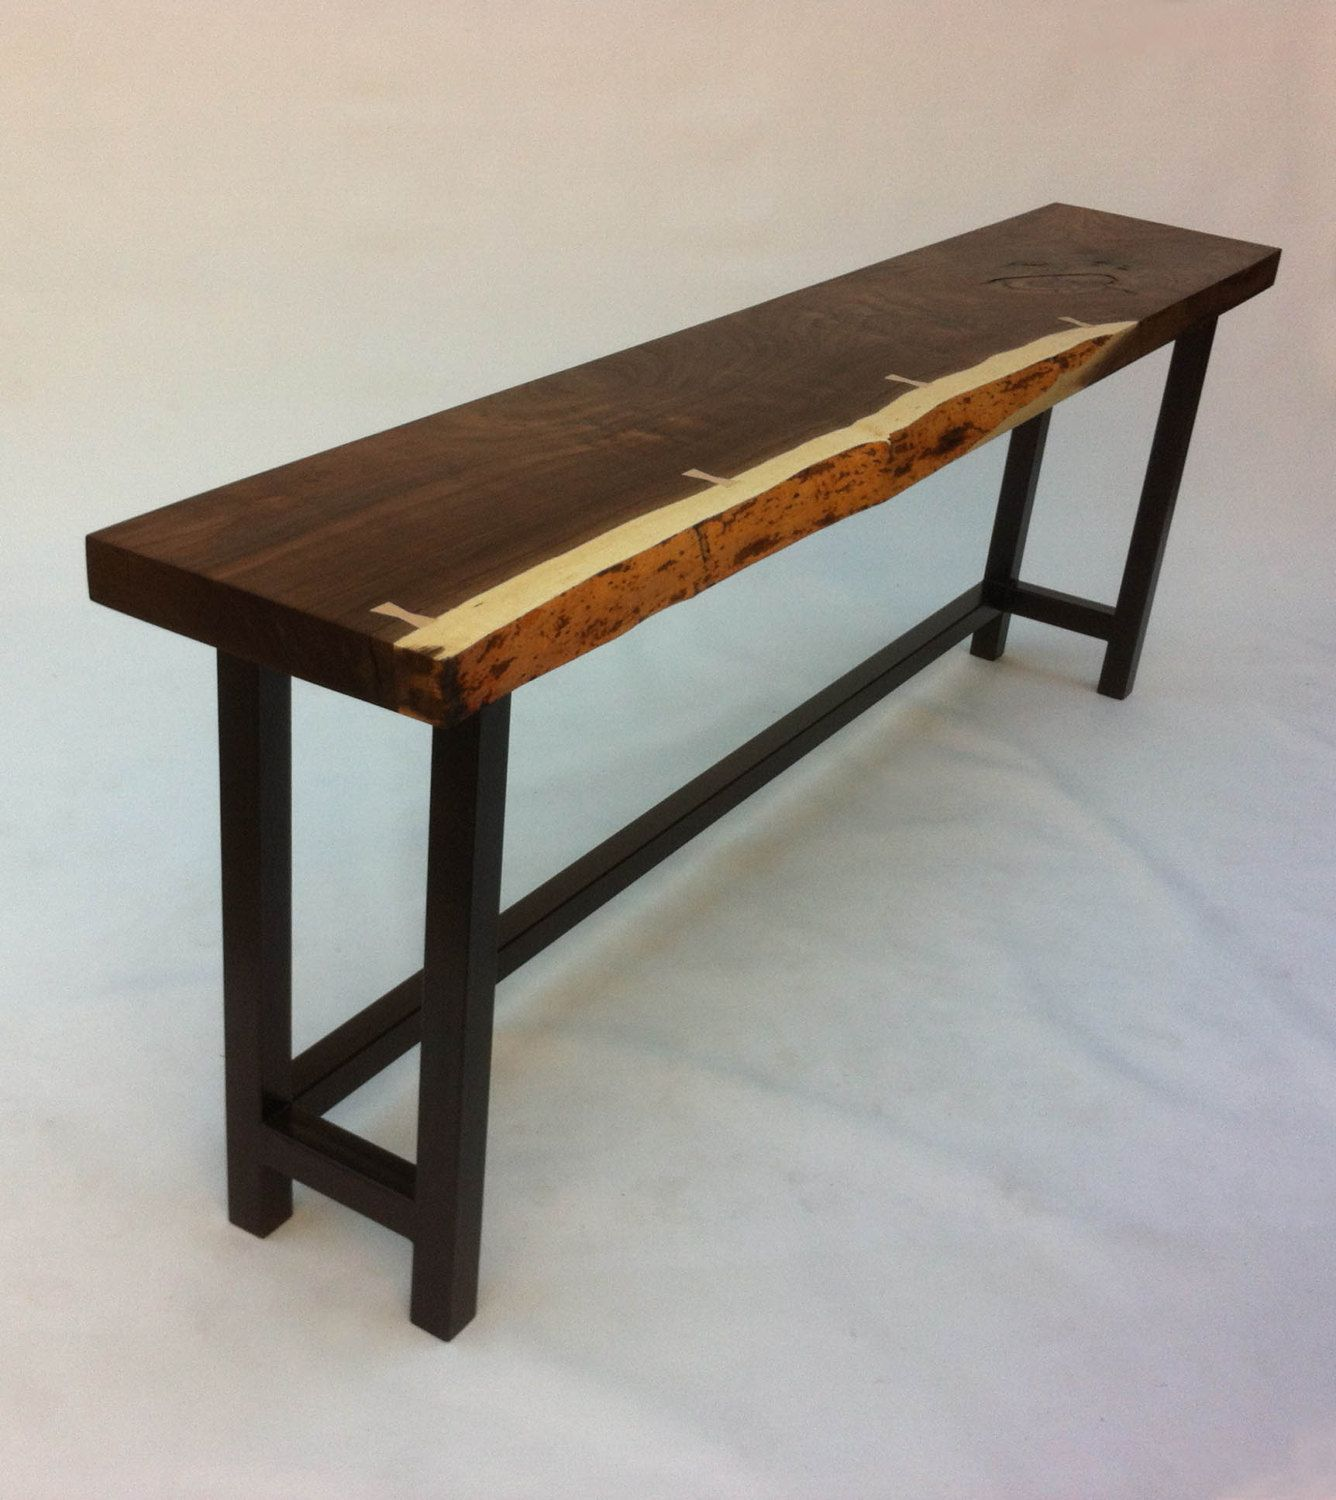 Contemporary Hall Table natural live edge walnut slab hall table - contemporary console in